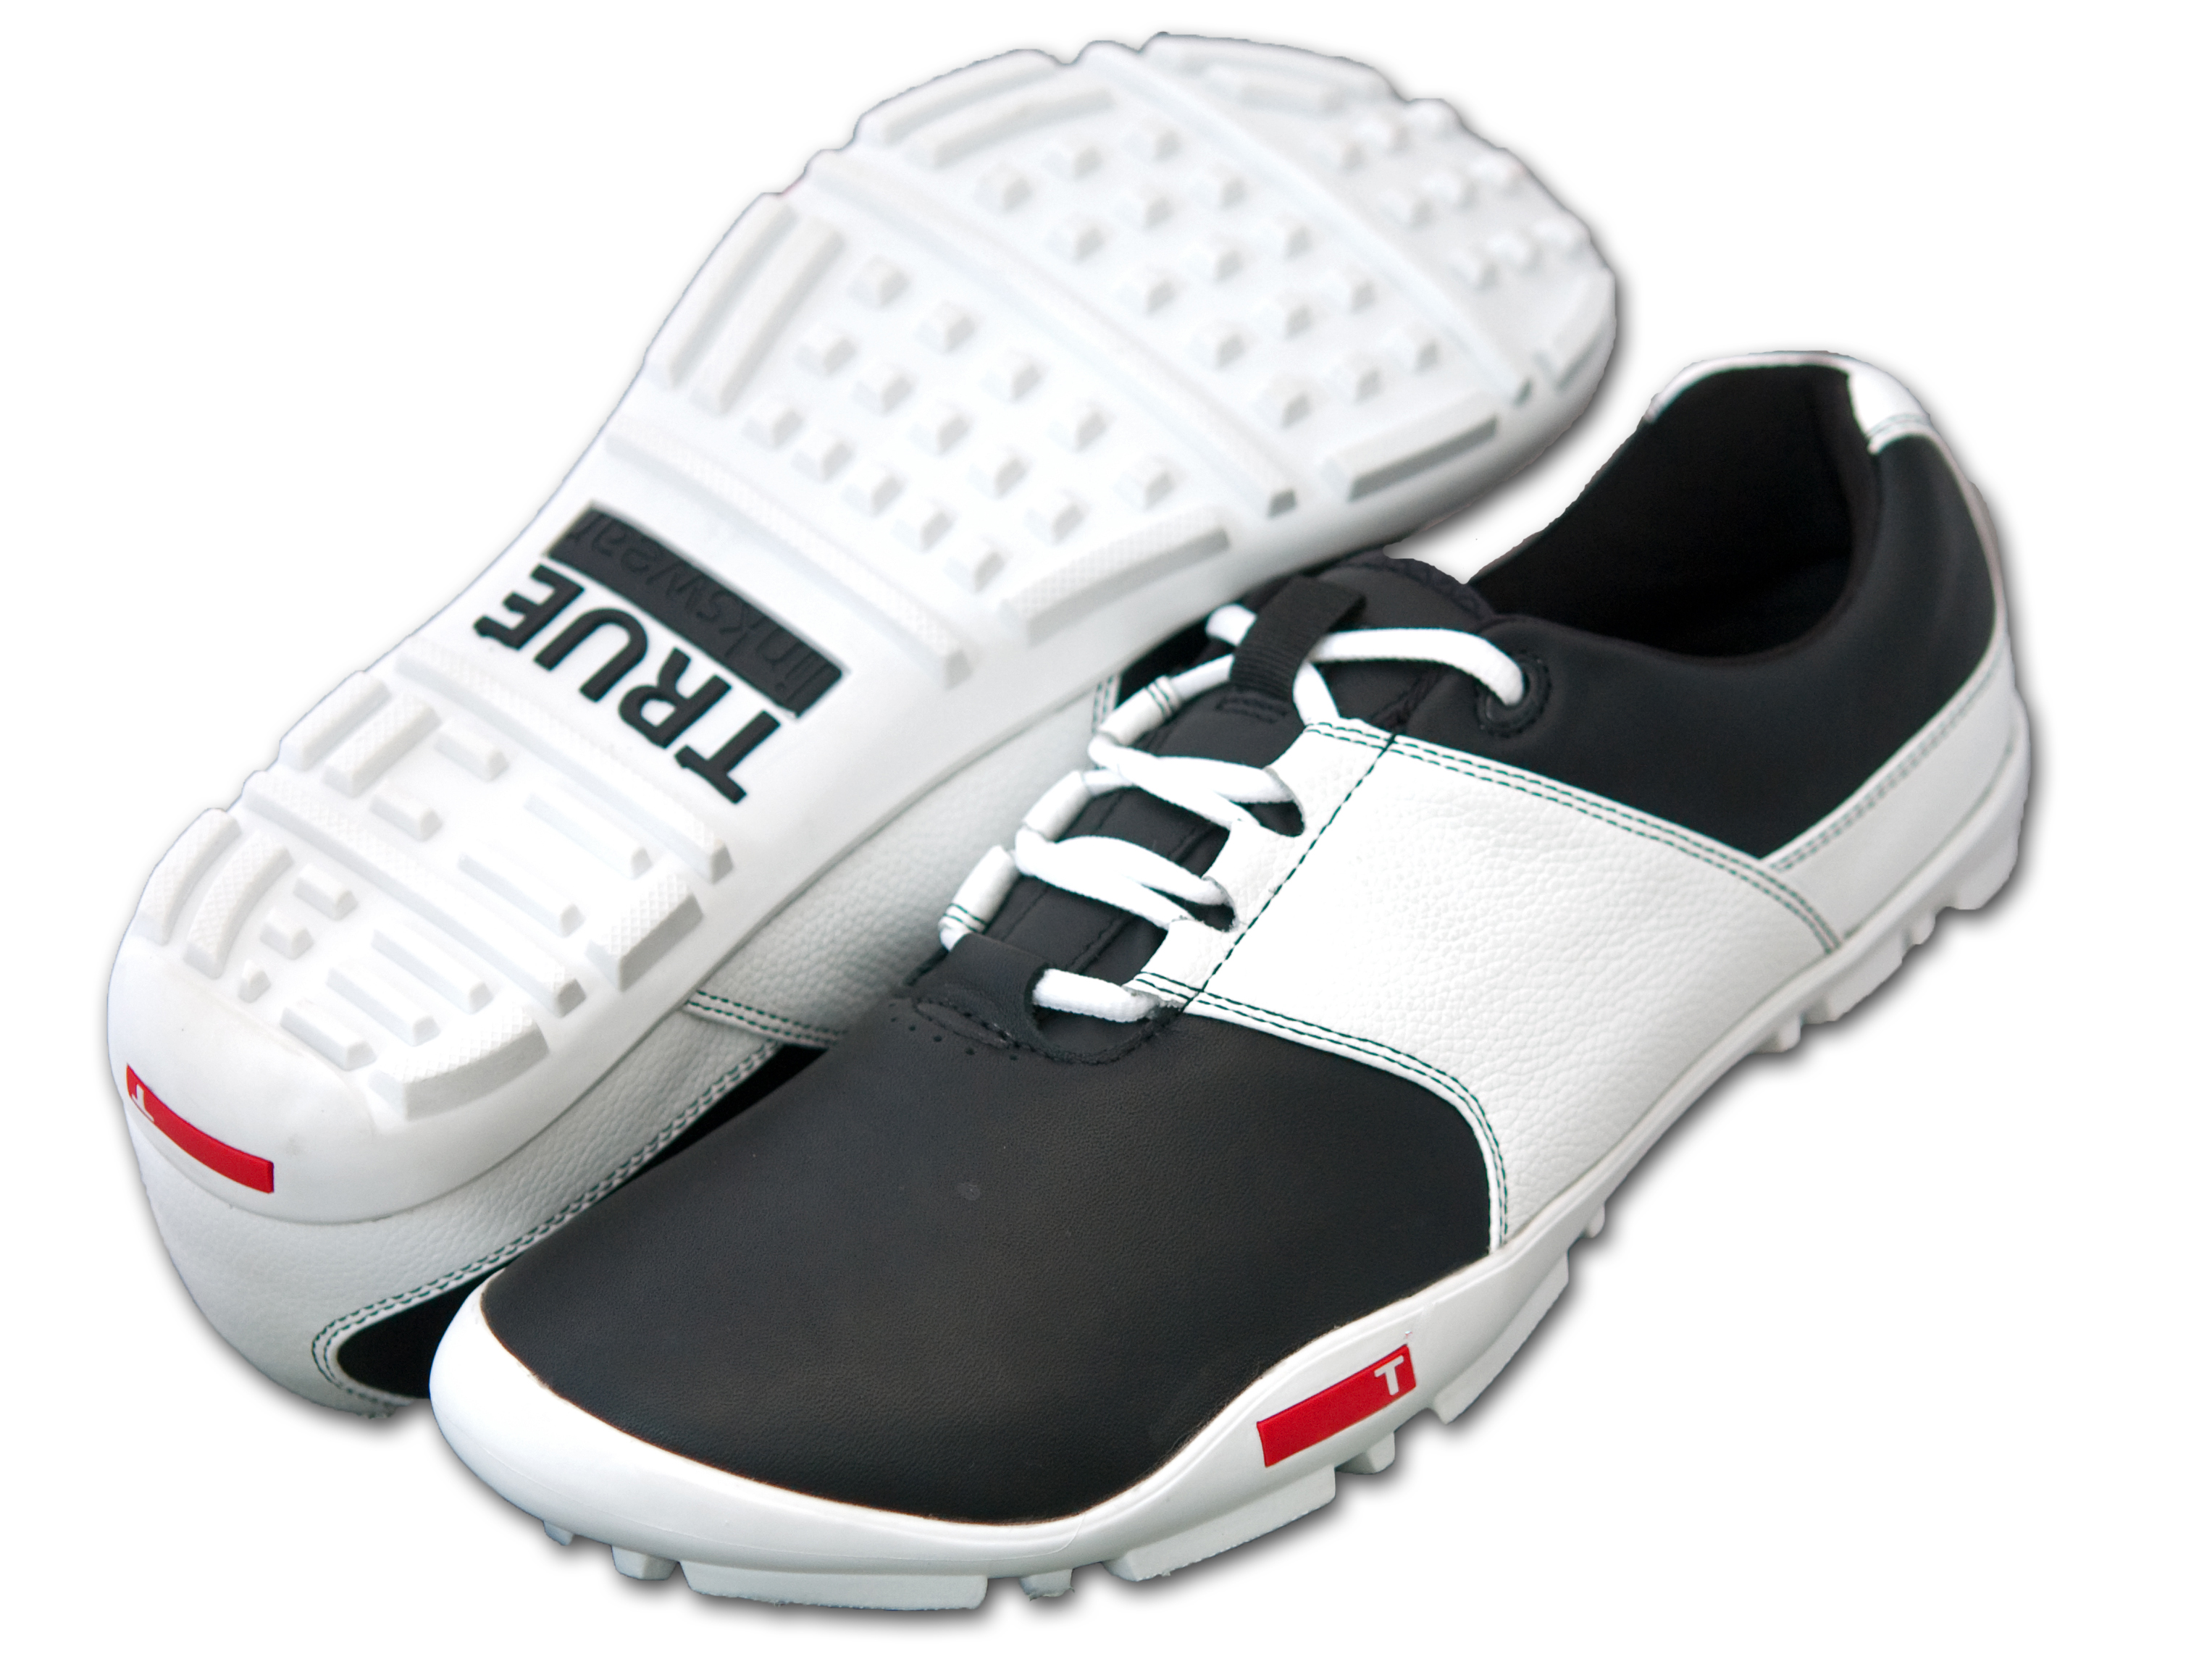 TRUE golf shoes